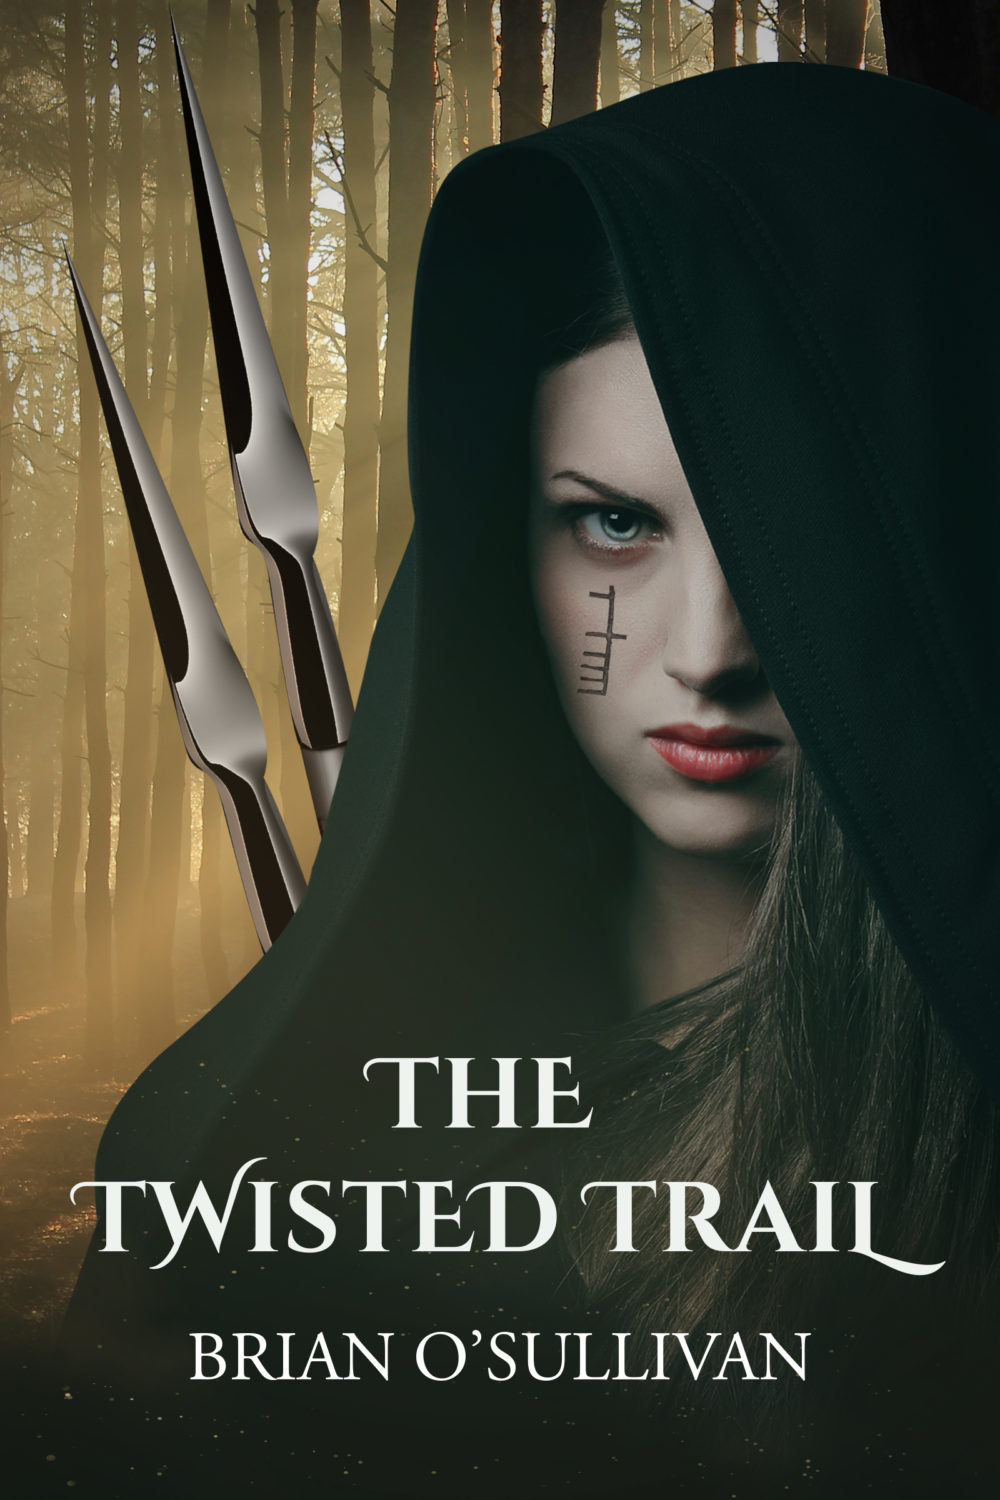 FIONN: The Twisted Trail